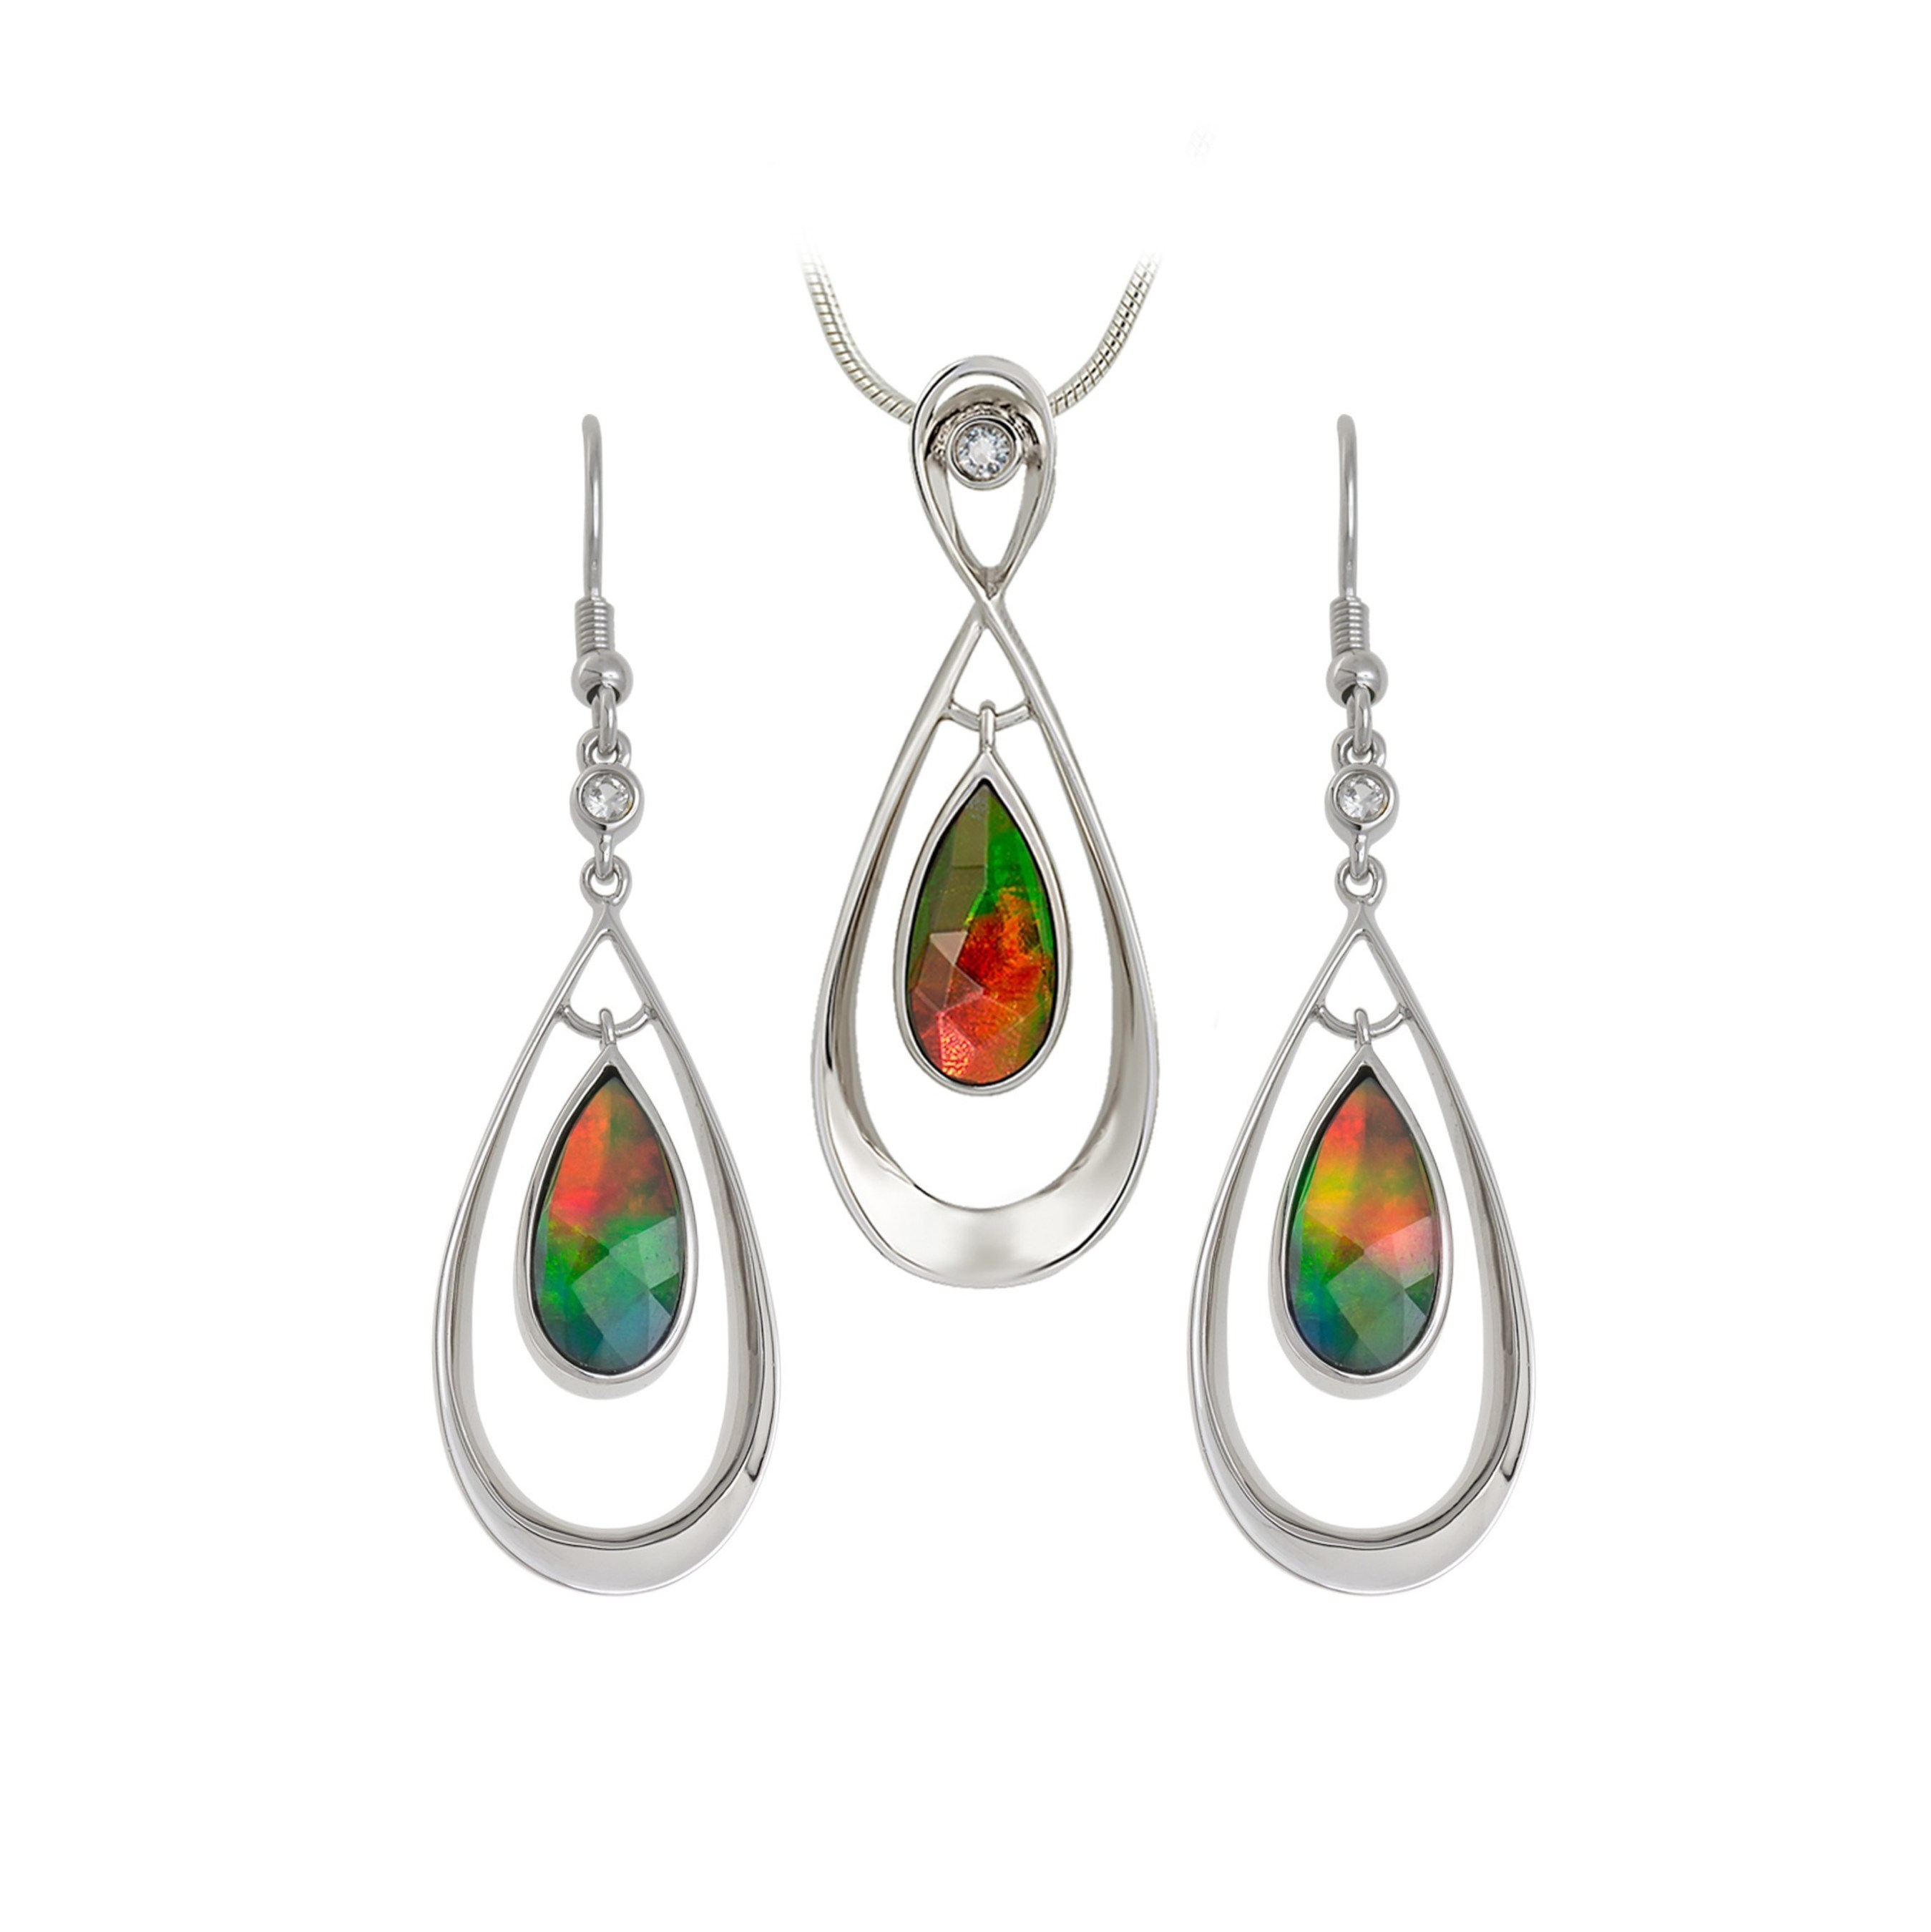 """Jewelers of America launches """"Amazing Ammolite Jewelry Sweepstakes"""" at www.jewelers.org/ammolitesweeps. Three winners will receive an ammolite earring and pendant set from KORITE."""